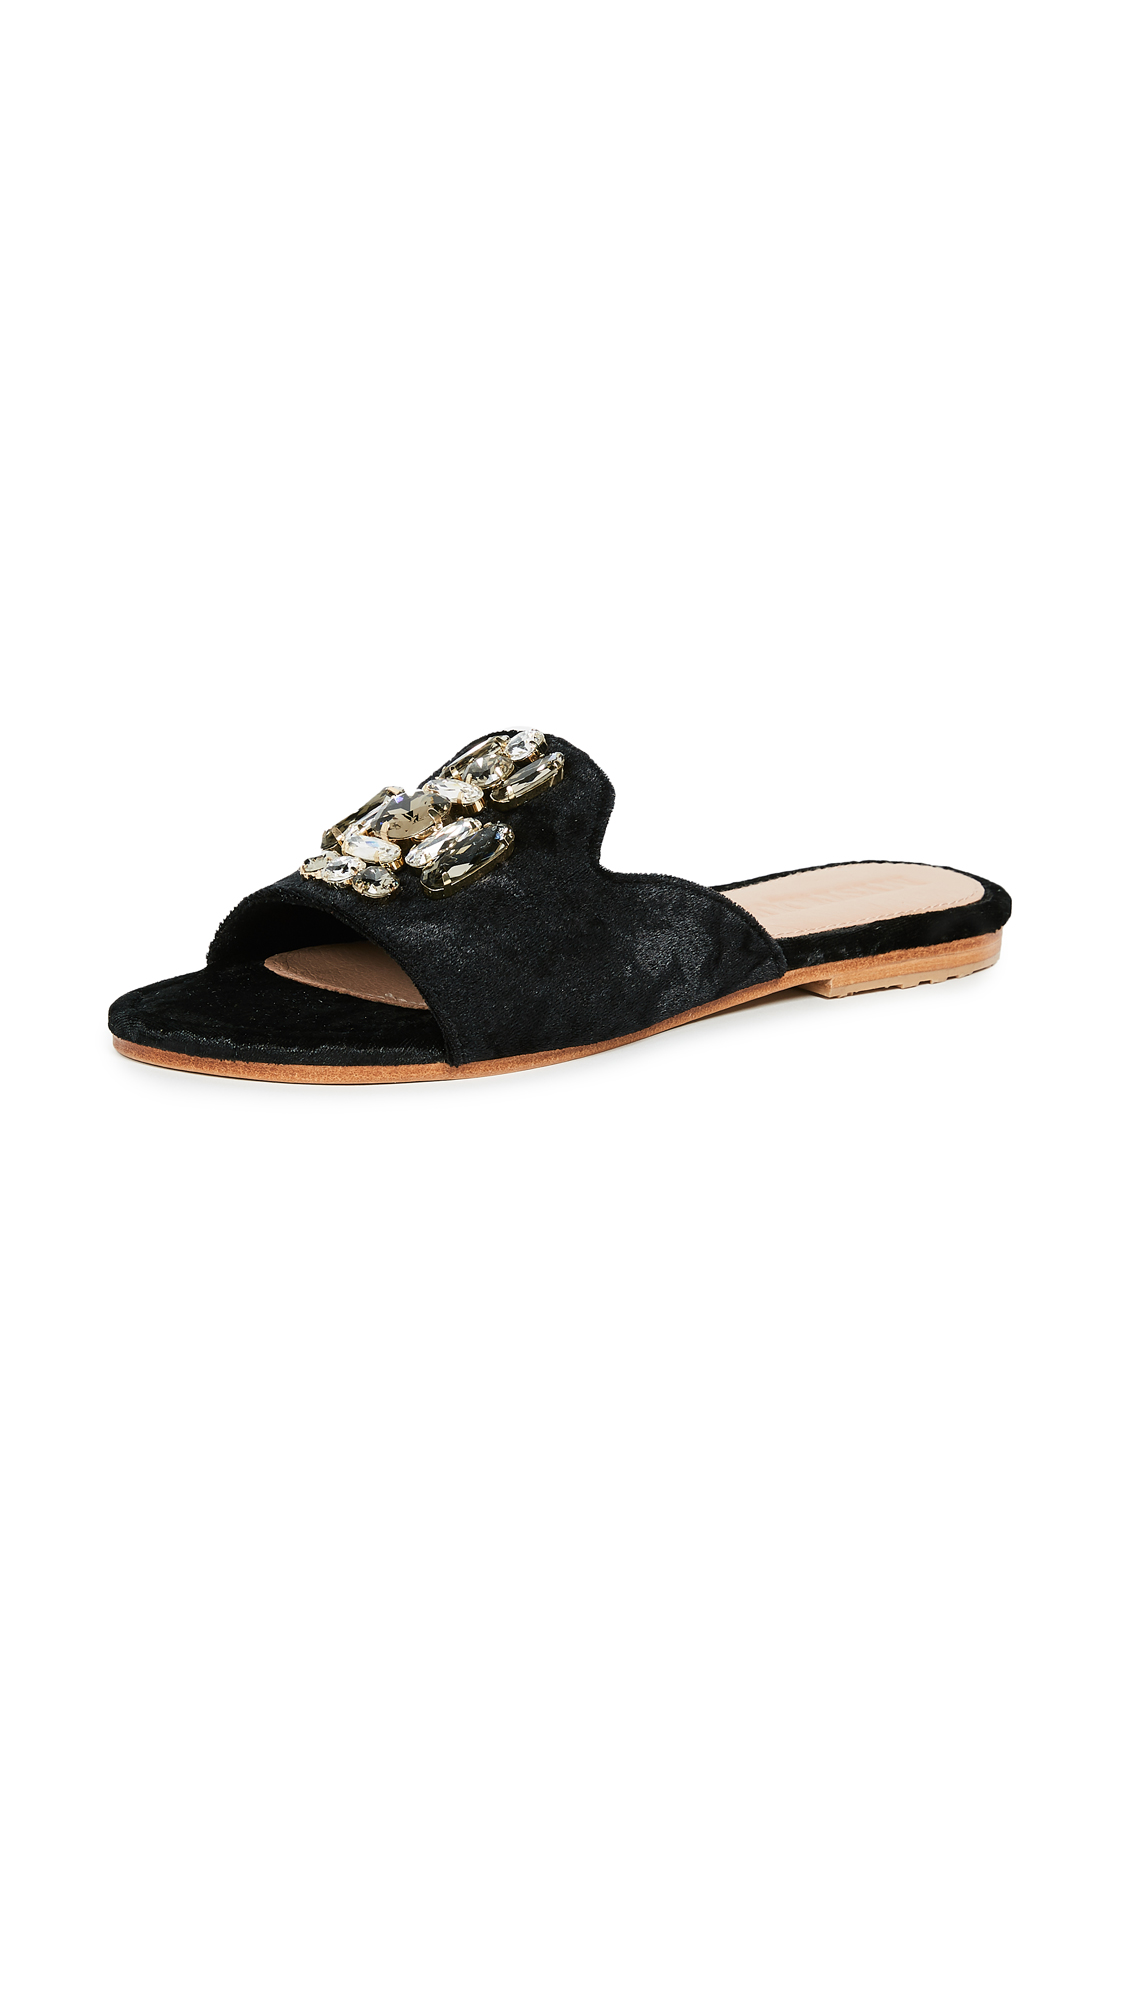 Mystique Jewel Slides - Black